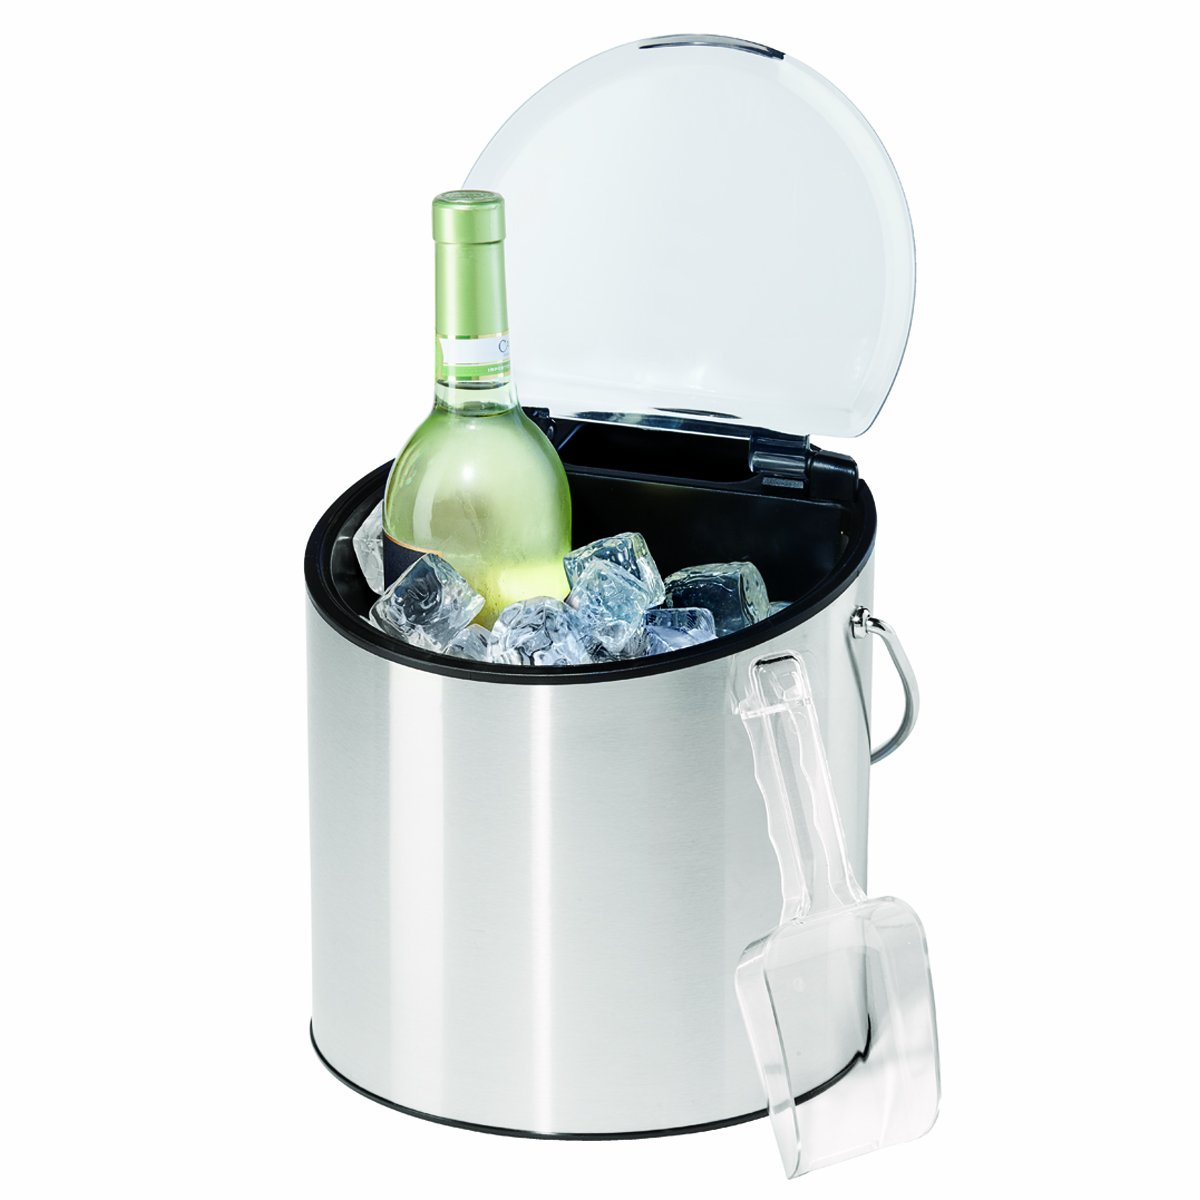 amazoncom oggi  stainless steel ice and wine bucket with  - amazoncom oggi  stainless steel ice and wine bucket with flip top lidand ice scoop holds  bottles kitchen  dining